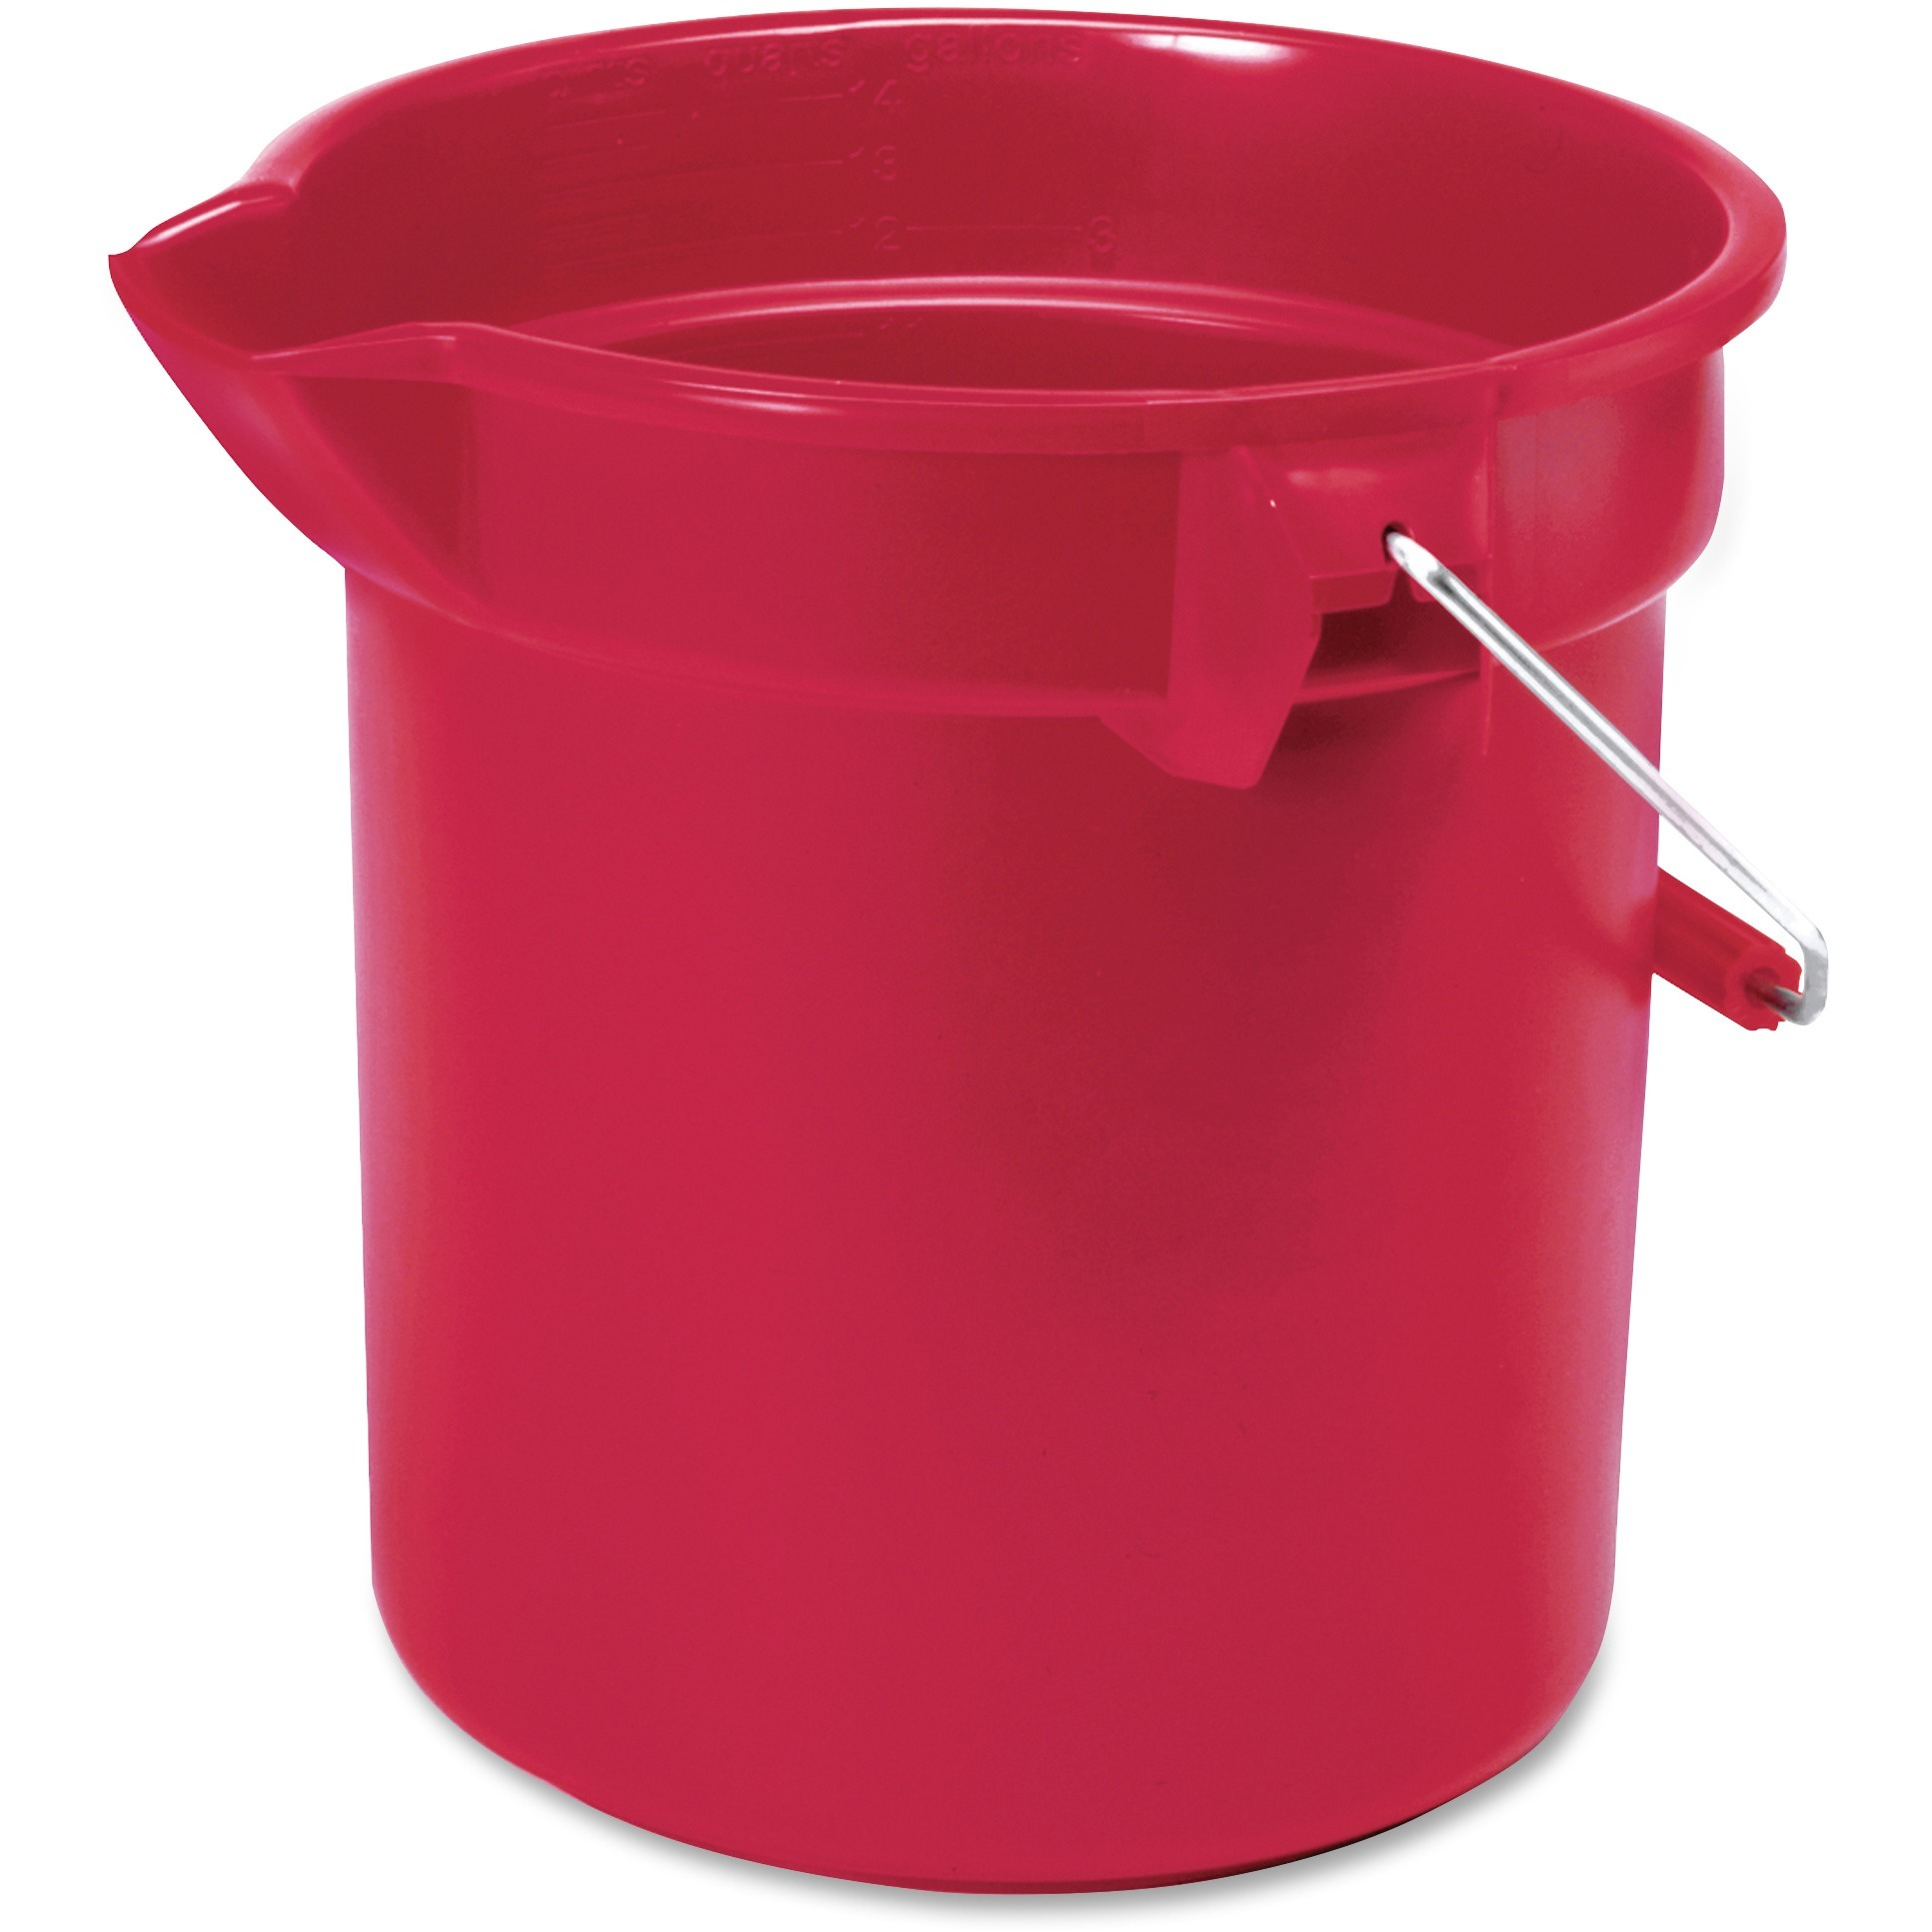 Rubbermaid Commercial, RCP296300RD, Brute 10-quart Utility Bucket, 1 Each, Red,Nickel,Chrome